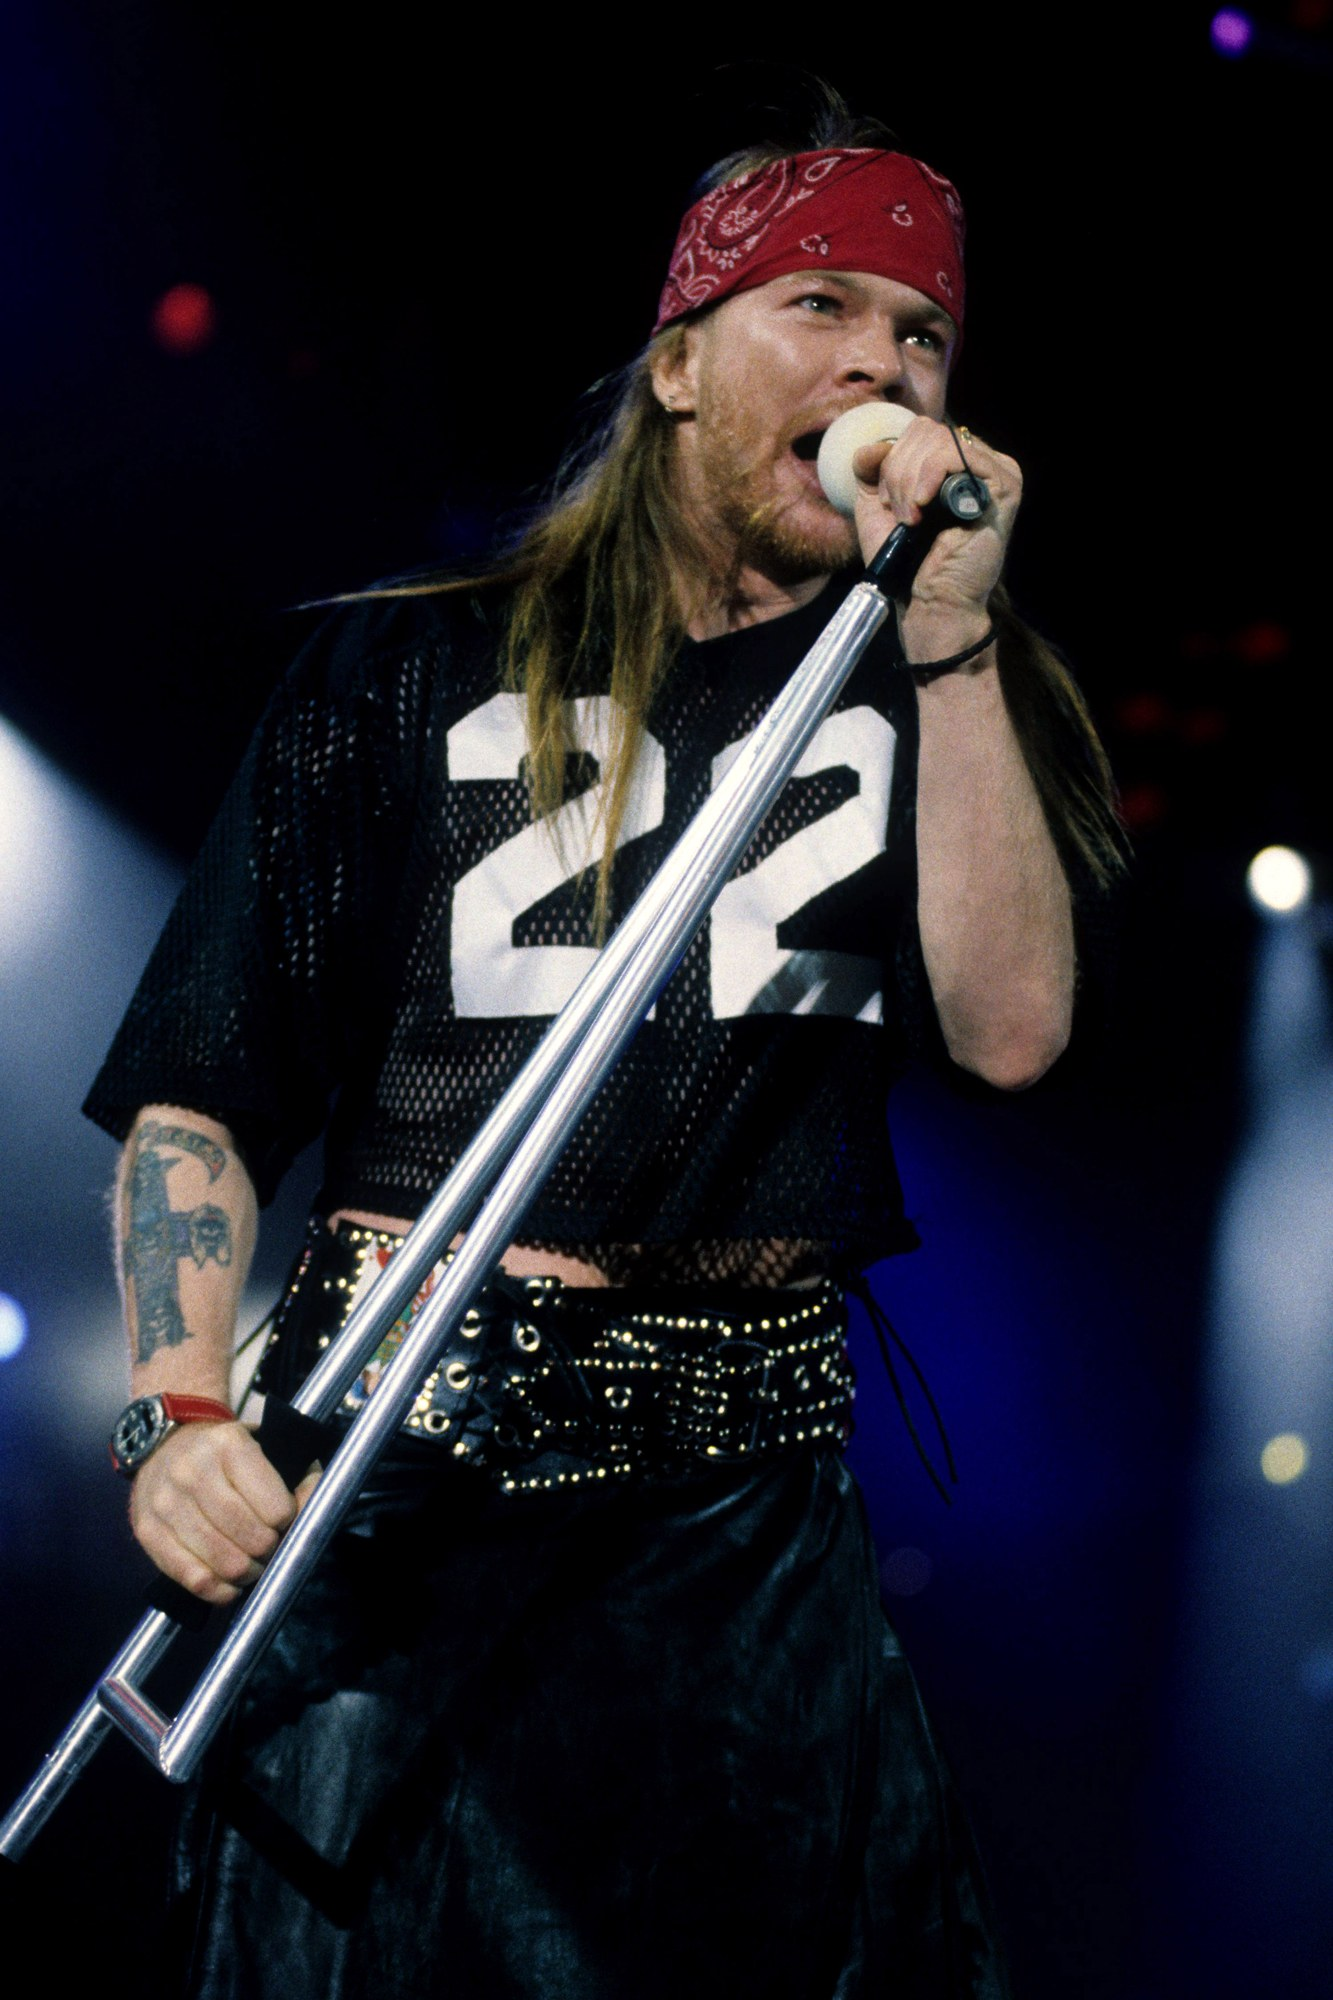 """On the screen, Axl Rose silently hopped across the stage in his bandana and cutoff shirt."""